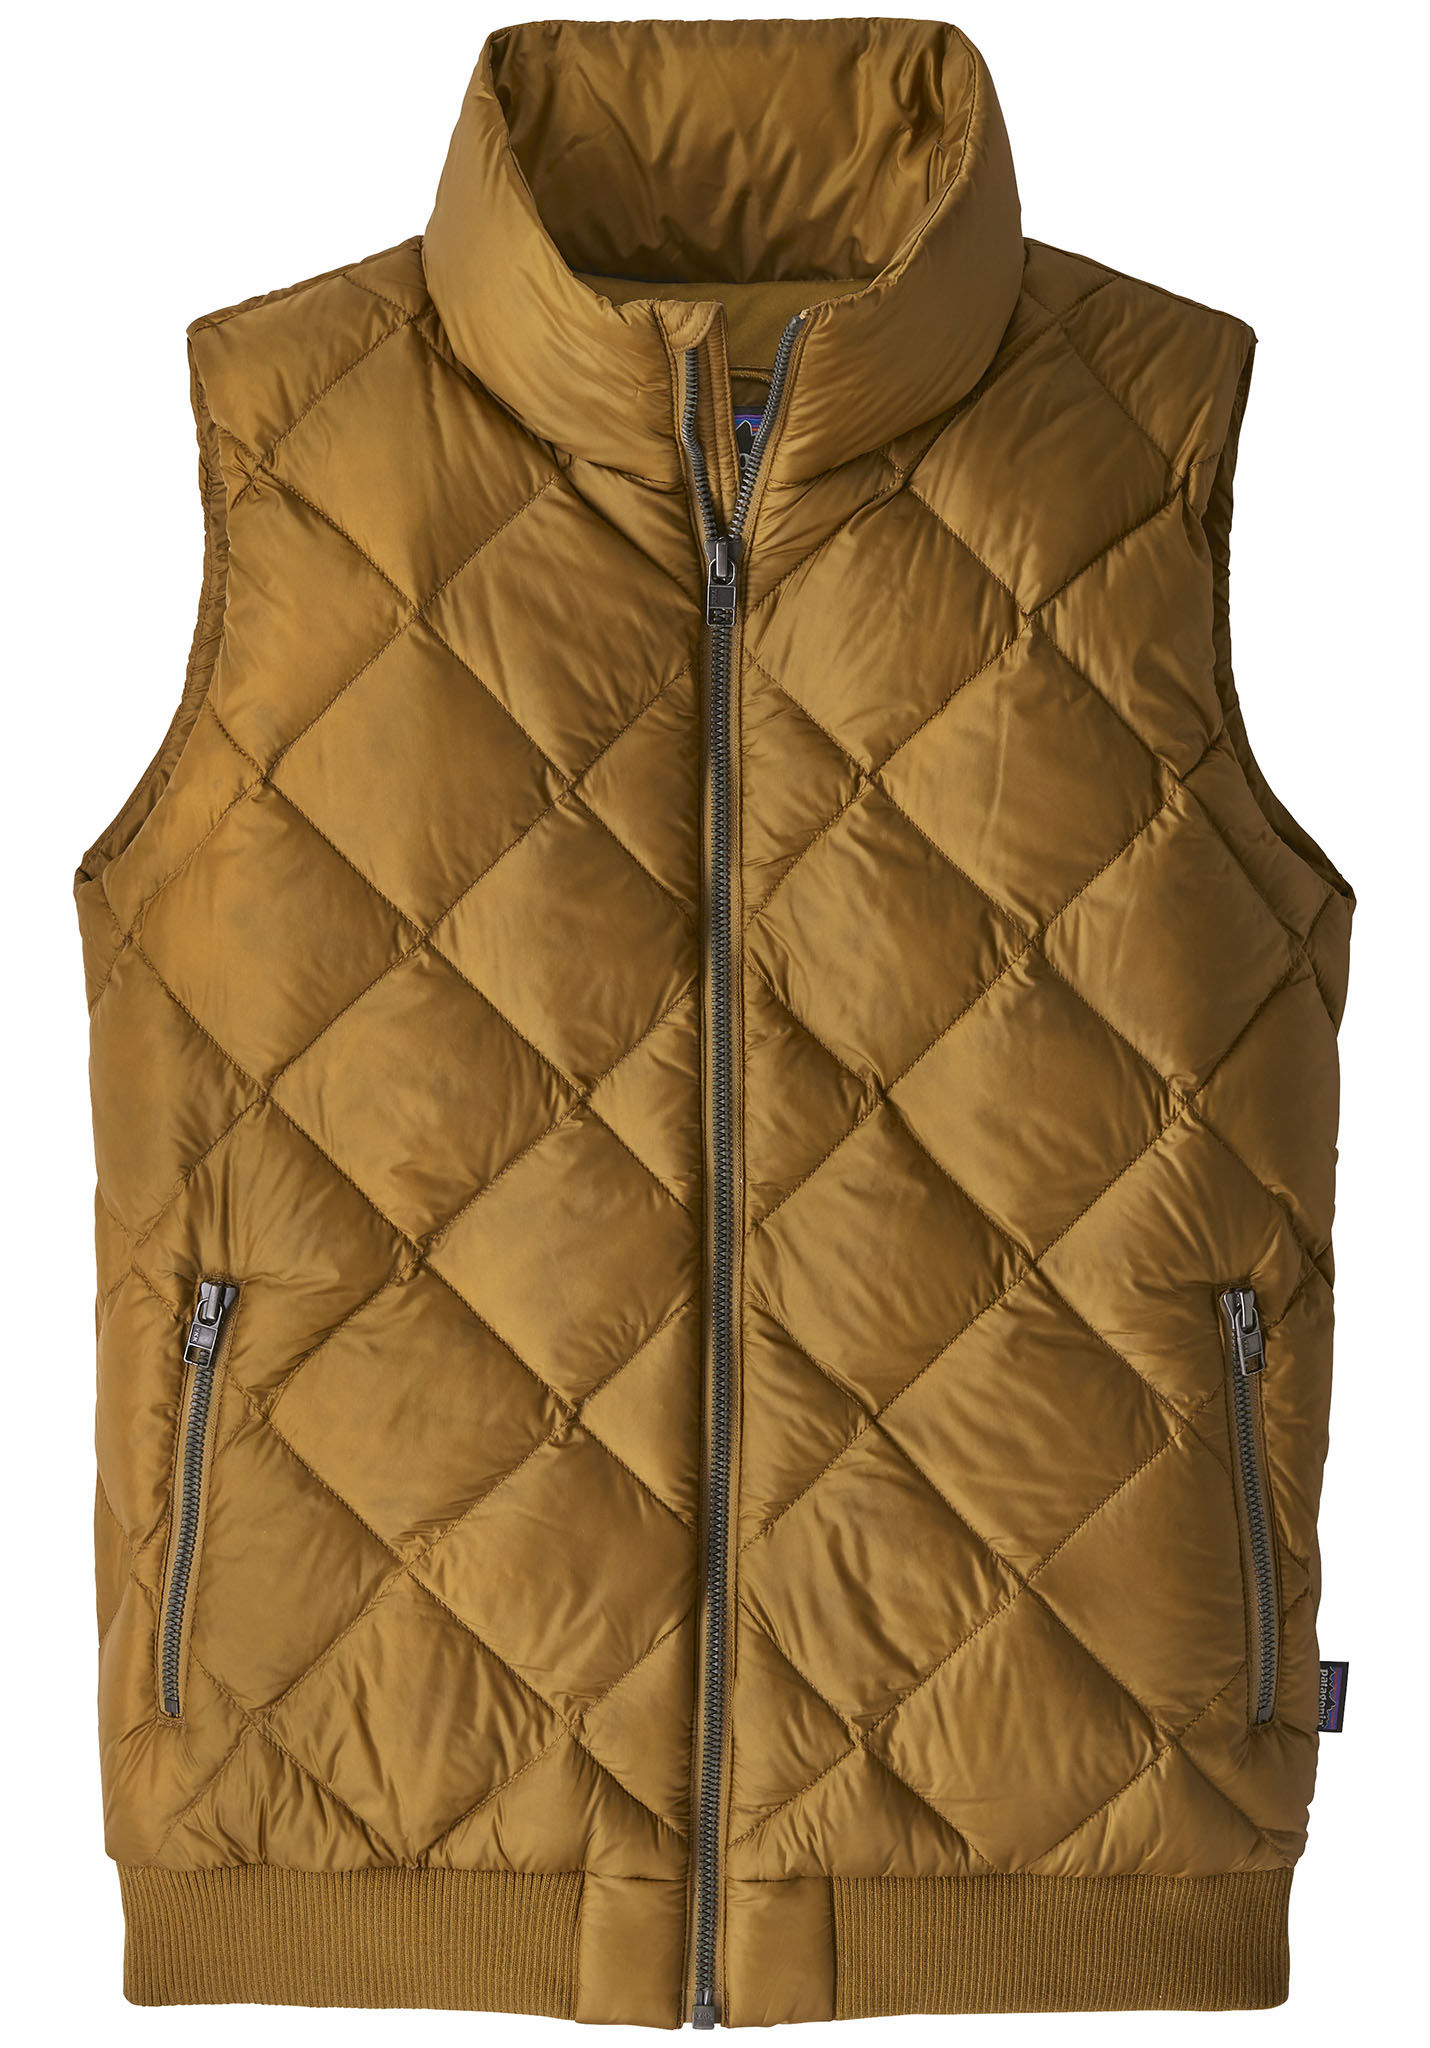 44a01afde7b PATAGONIA Prow Bomber - Vest for Women - Brown - Planet Sports